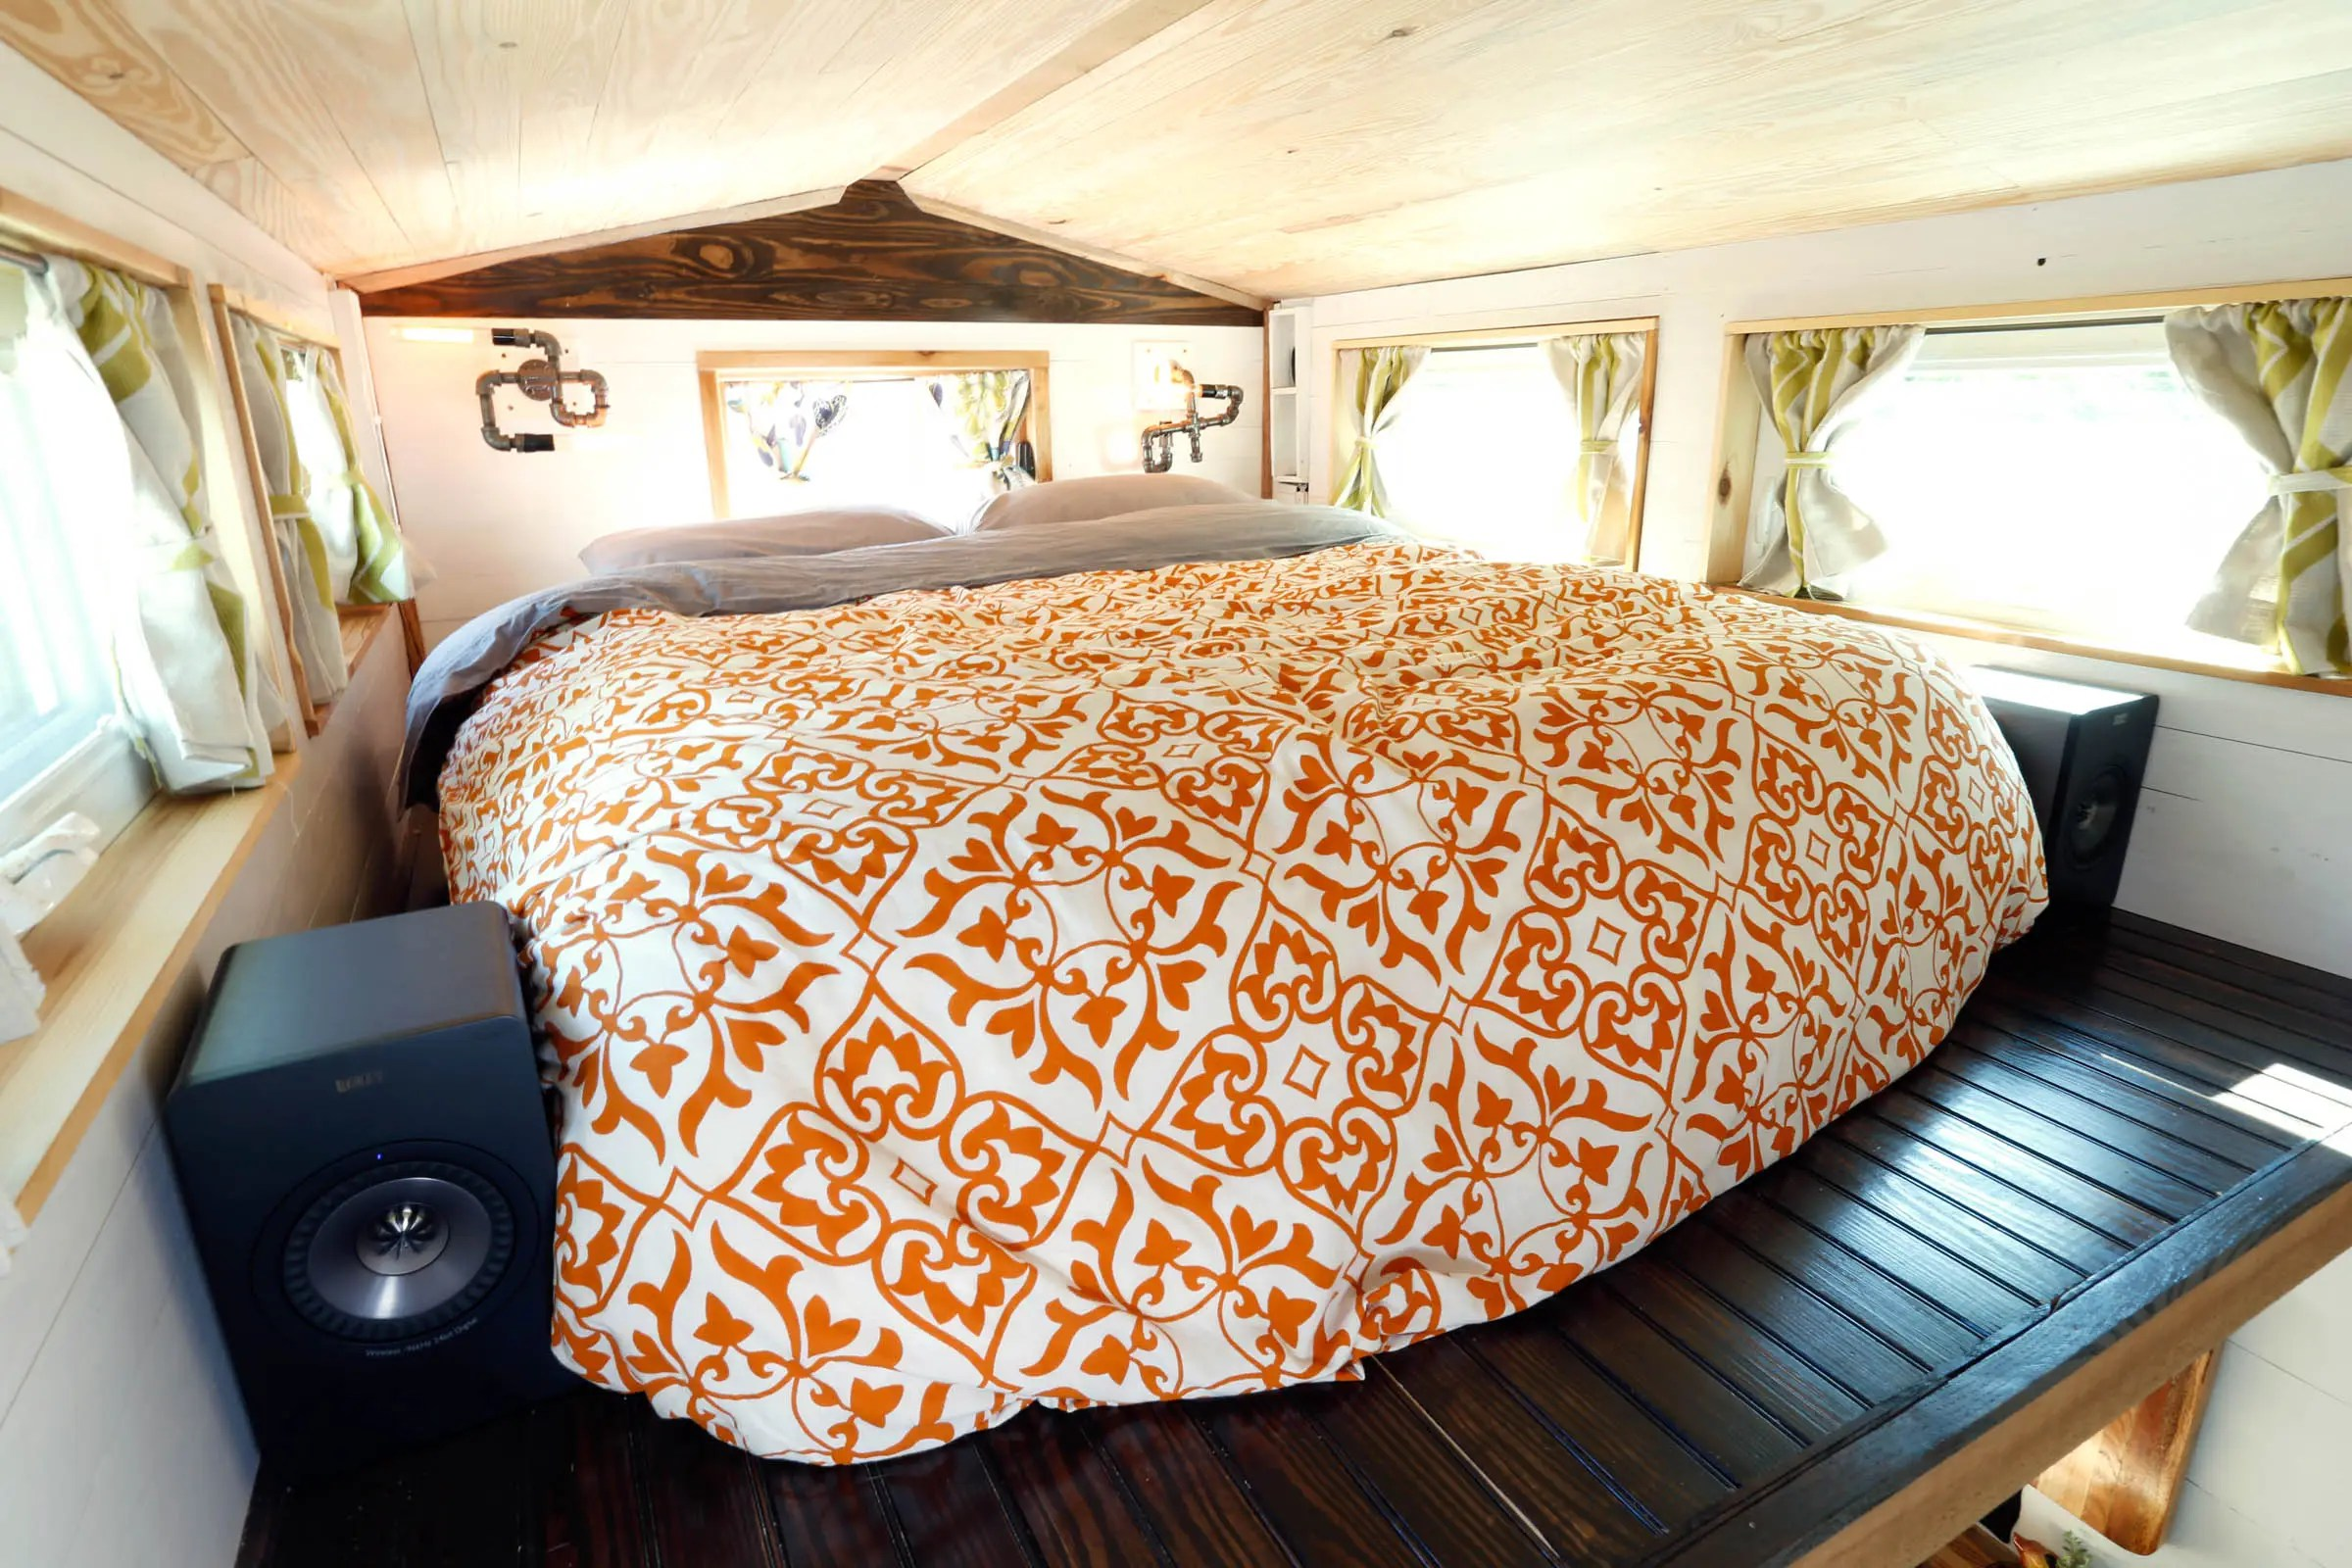 It has a queen bed and an abundance of windows, which helps make the tight quarters feel a little more spacious.